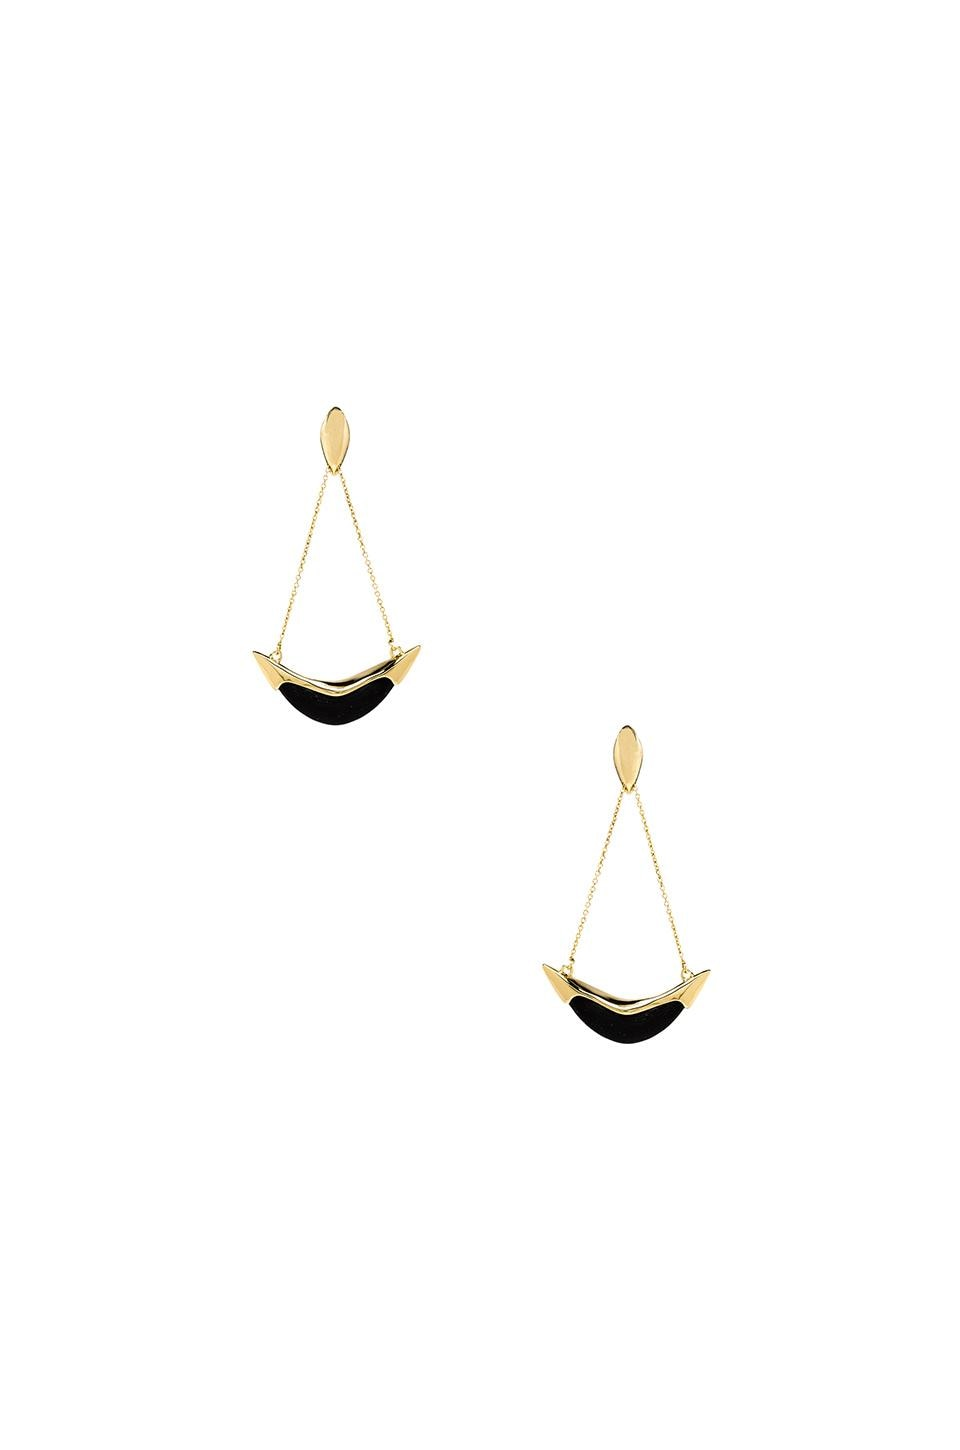 Alexis Bittar Large Liquid Metal Capped Crescent Earring in Black & Gold